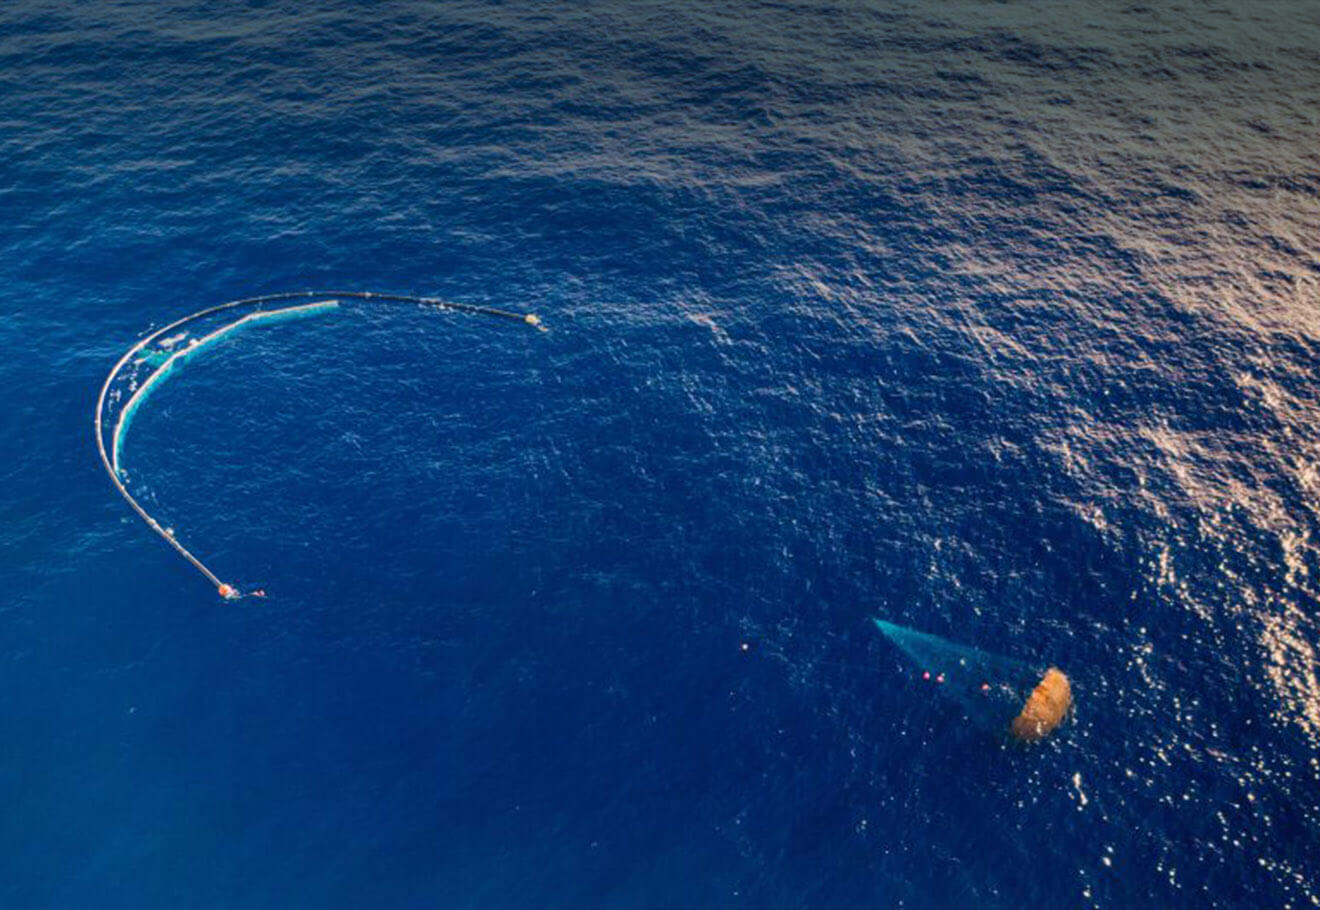 Use technology to remove plastic from ocean gyres